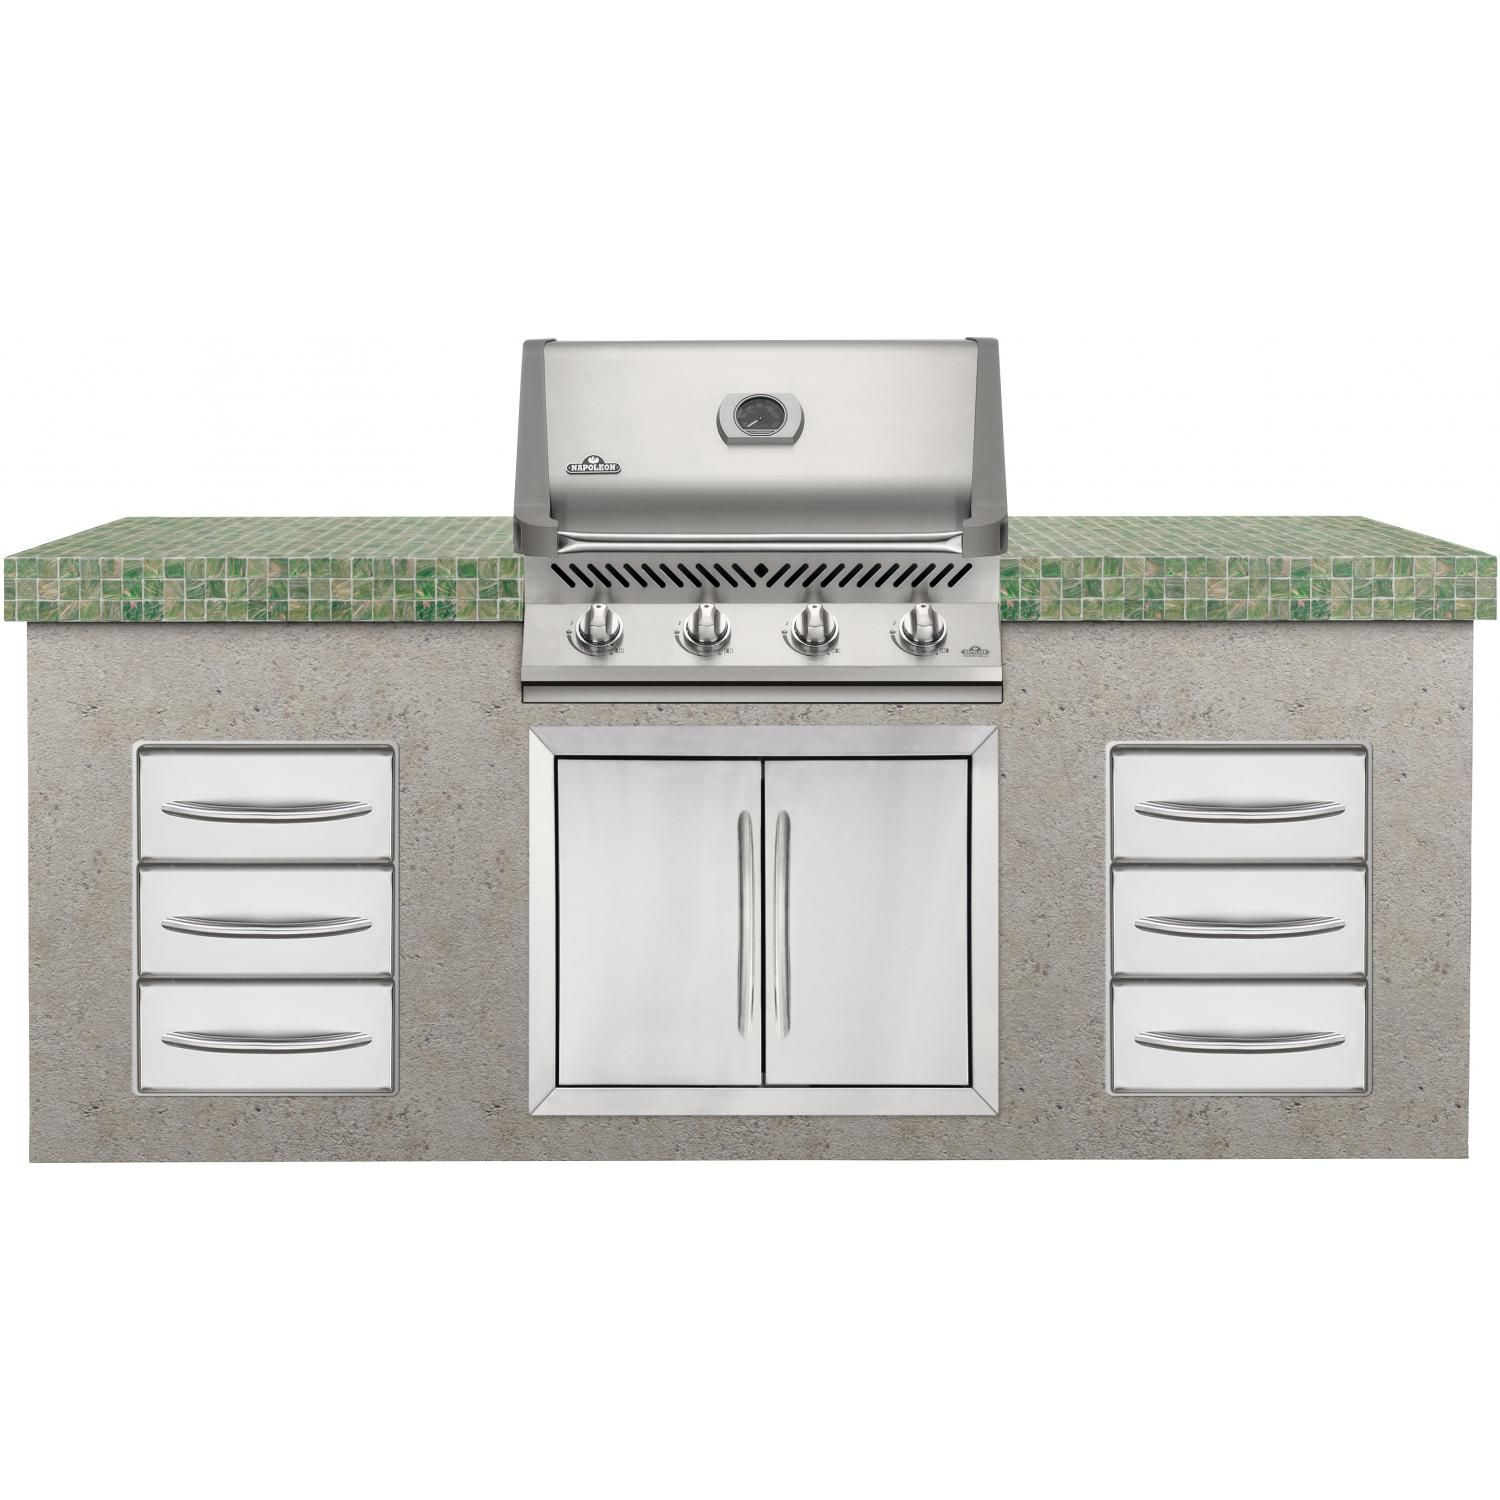 Napoleon Prestige 500 Built In Natural Gas Grill With Infrared Rear Burner Built In Grill Outdoor Kitchen Island Kitchen Island Design